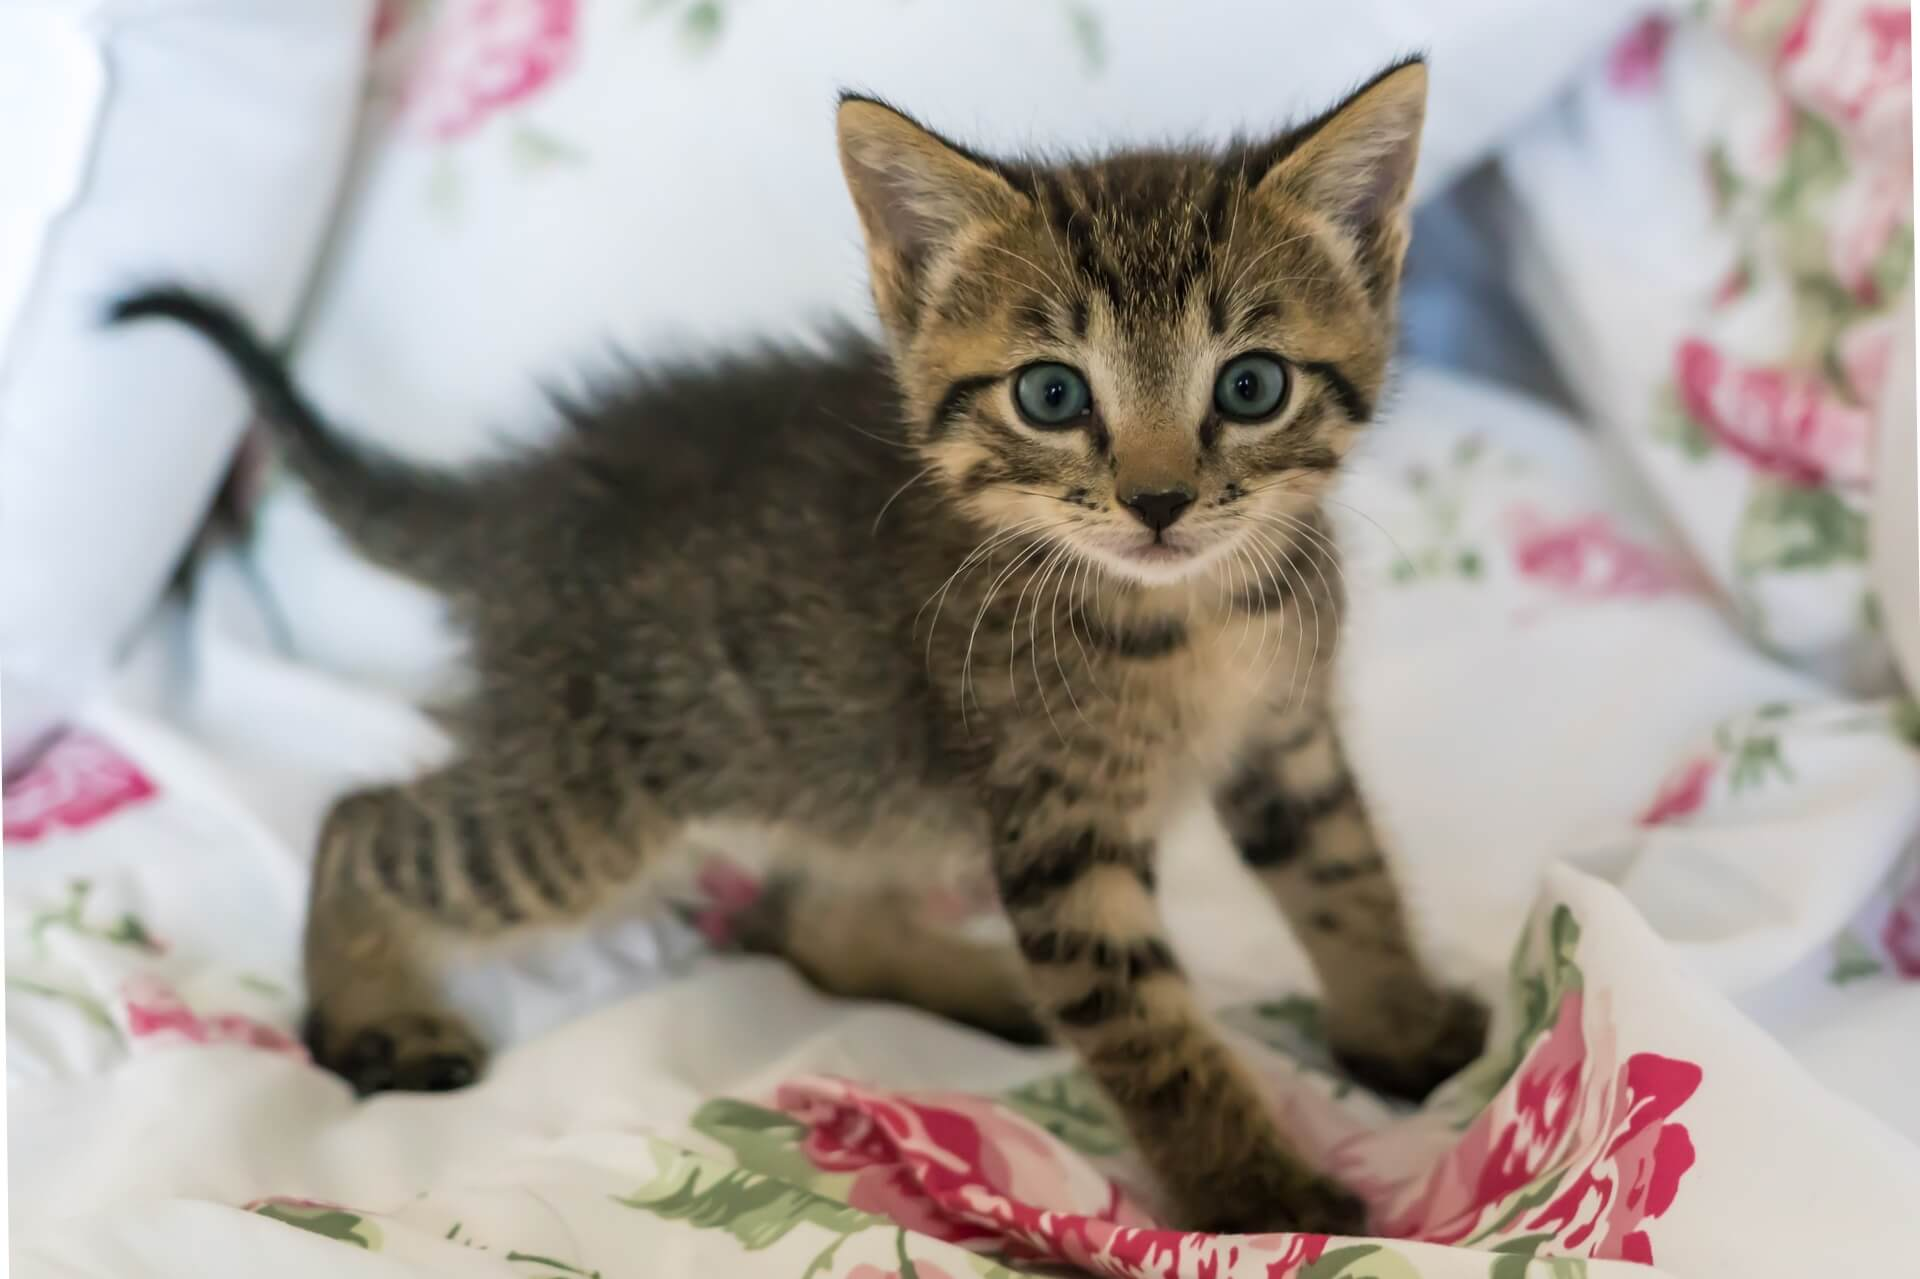 kitten bath time tips _ kitten standing on a rose-pattered blanket